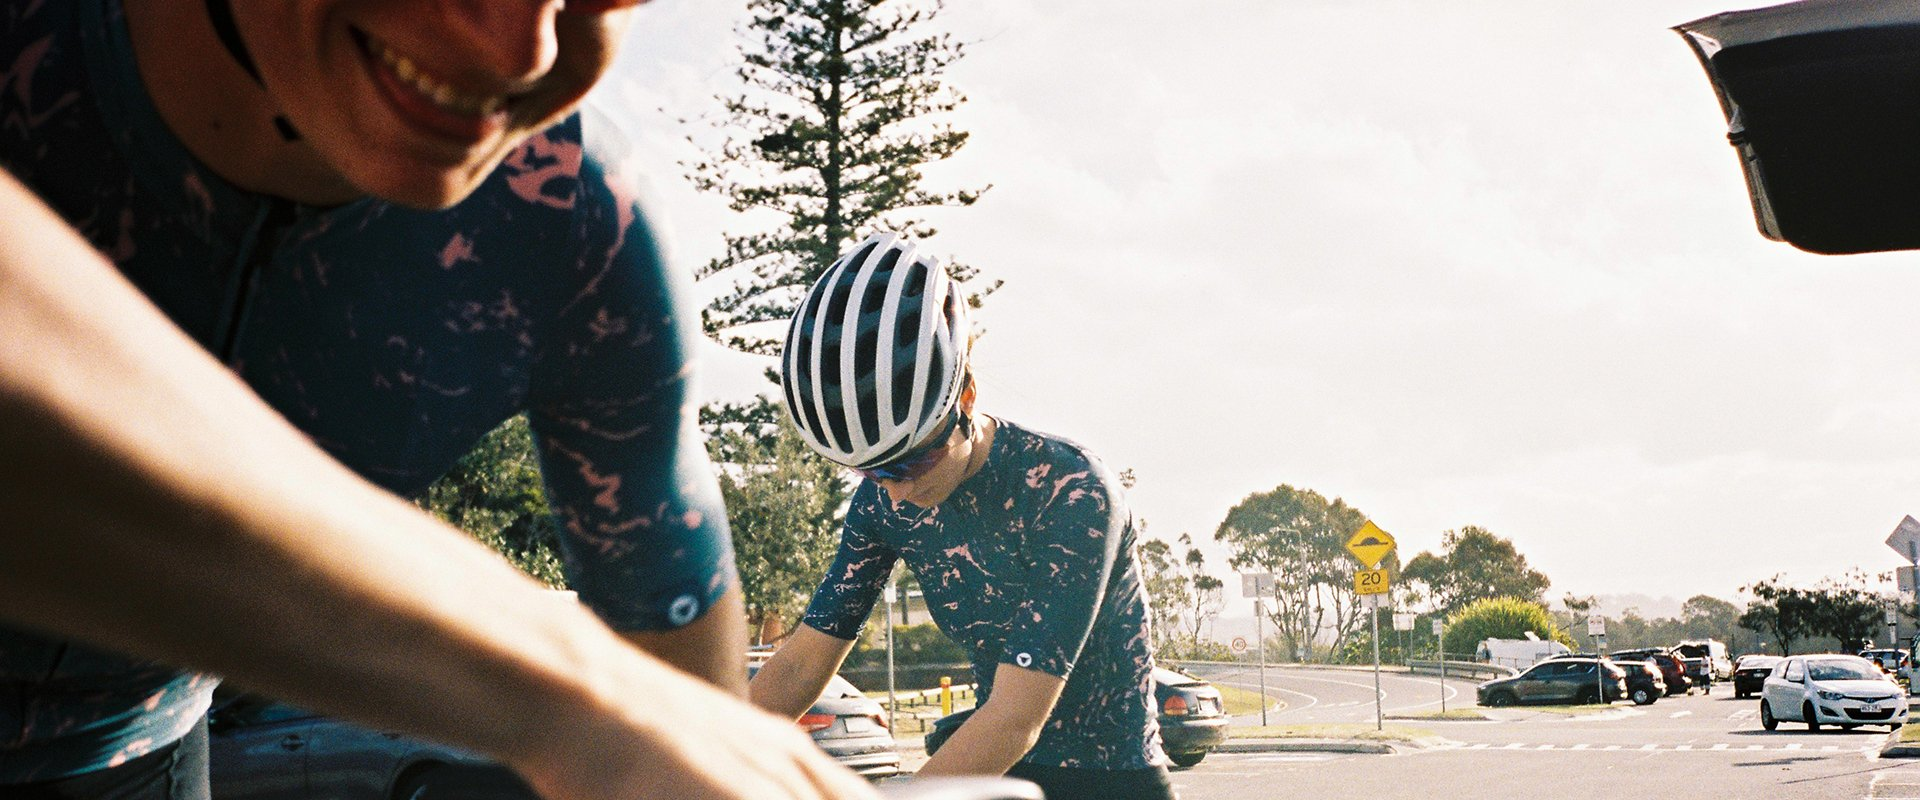 Black Sheep Cycling Essentials Team サイクルジャージ - Slate Marble   CYCLISM